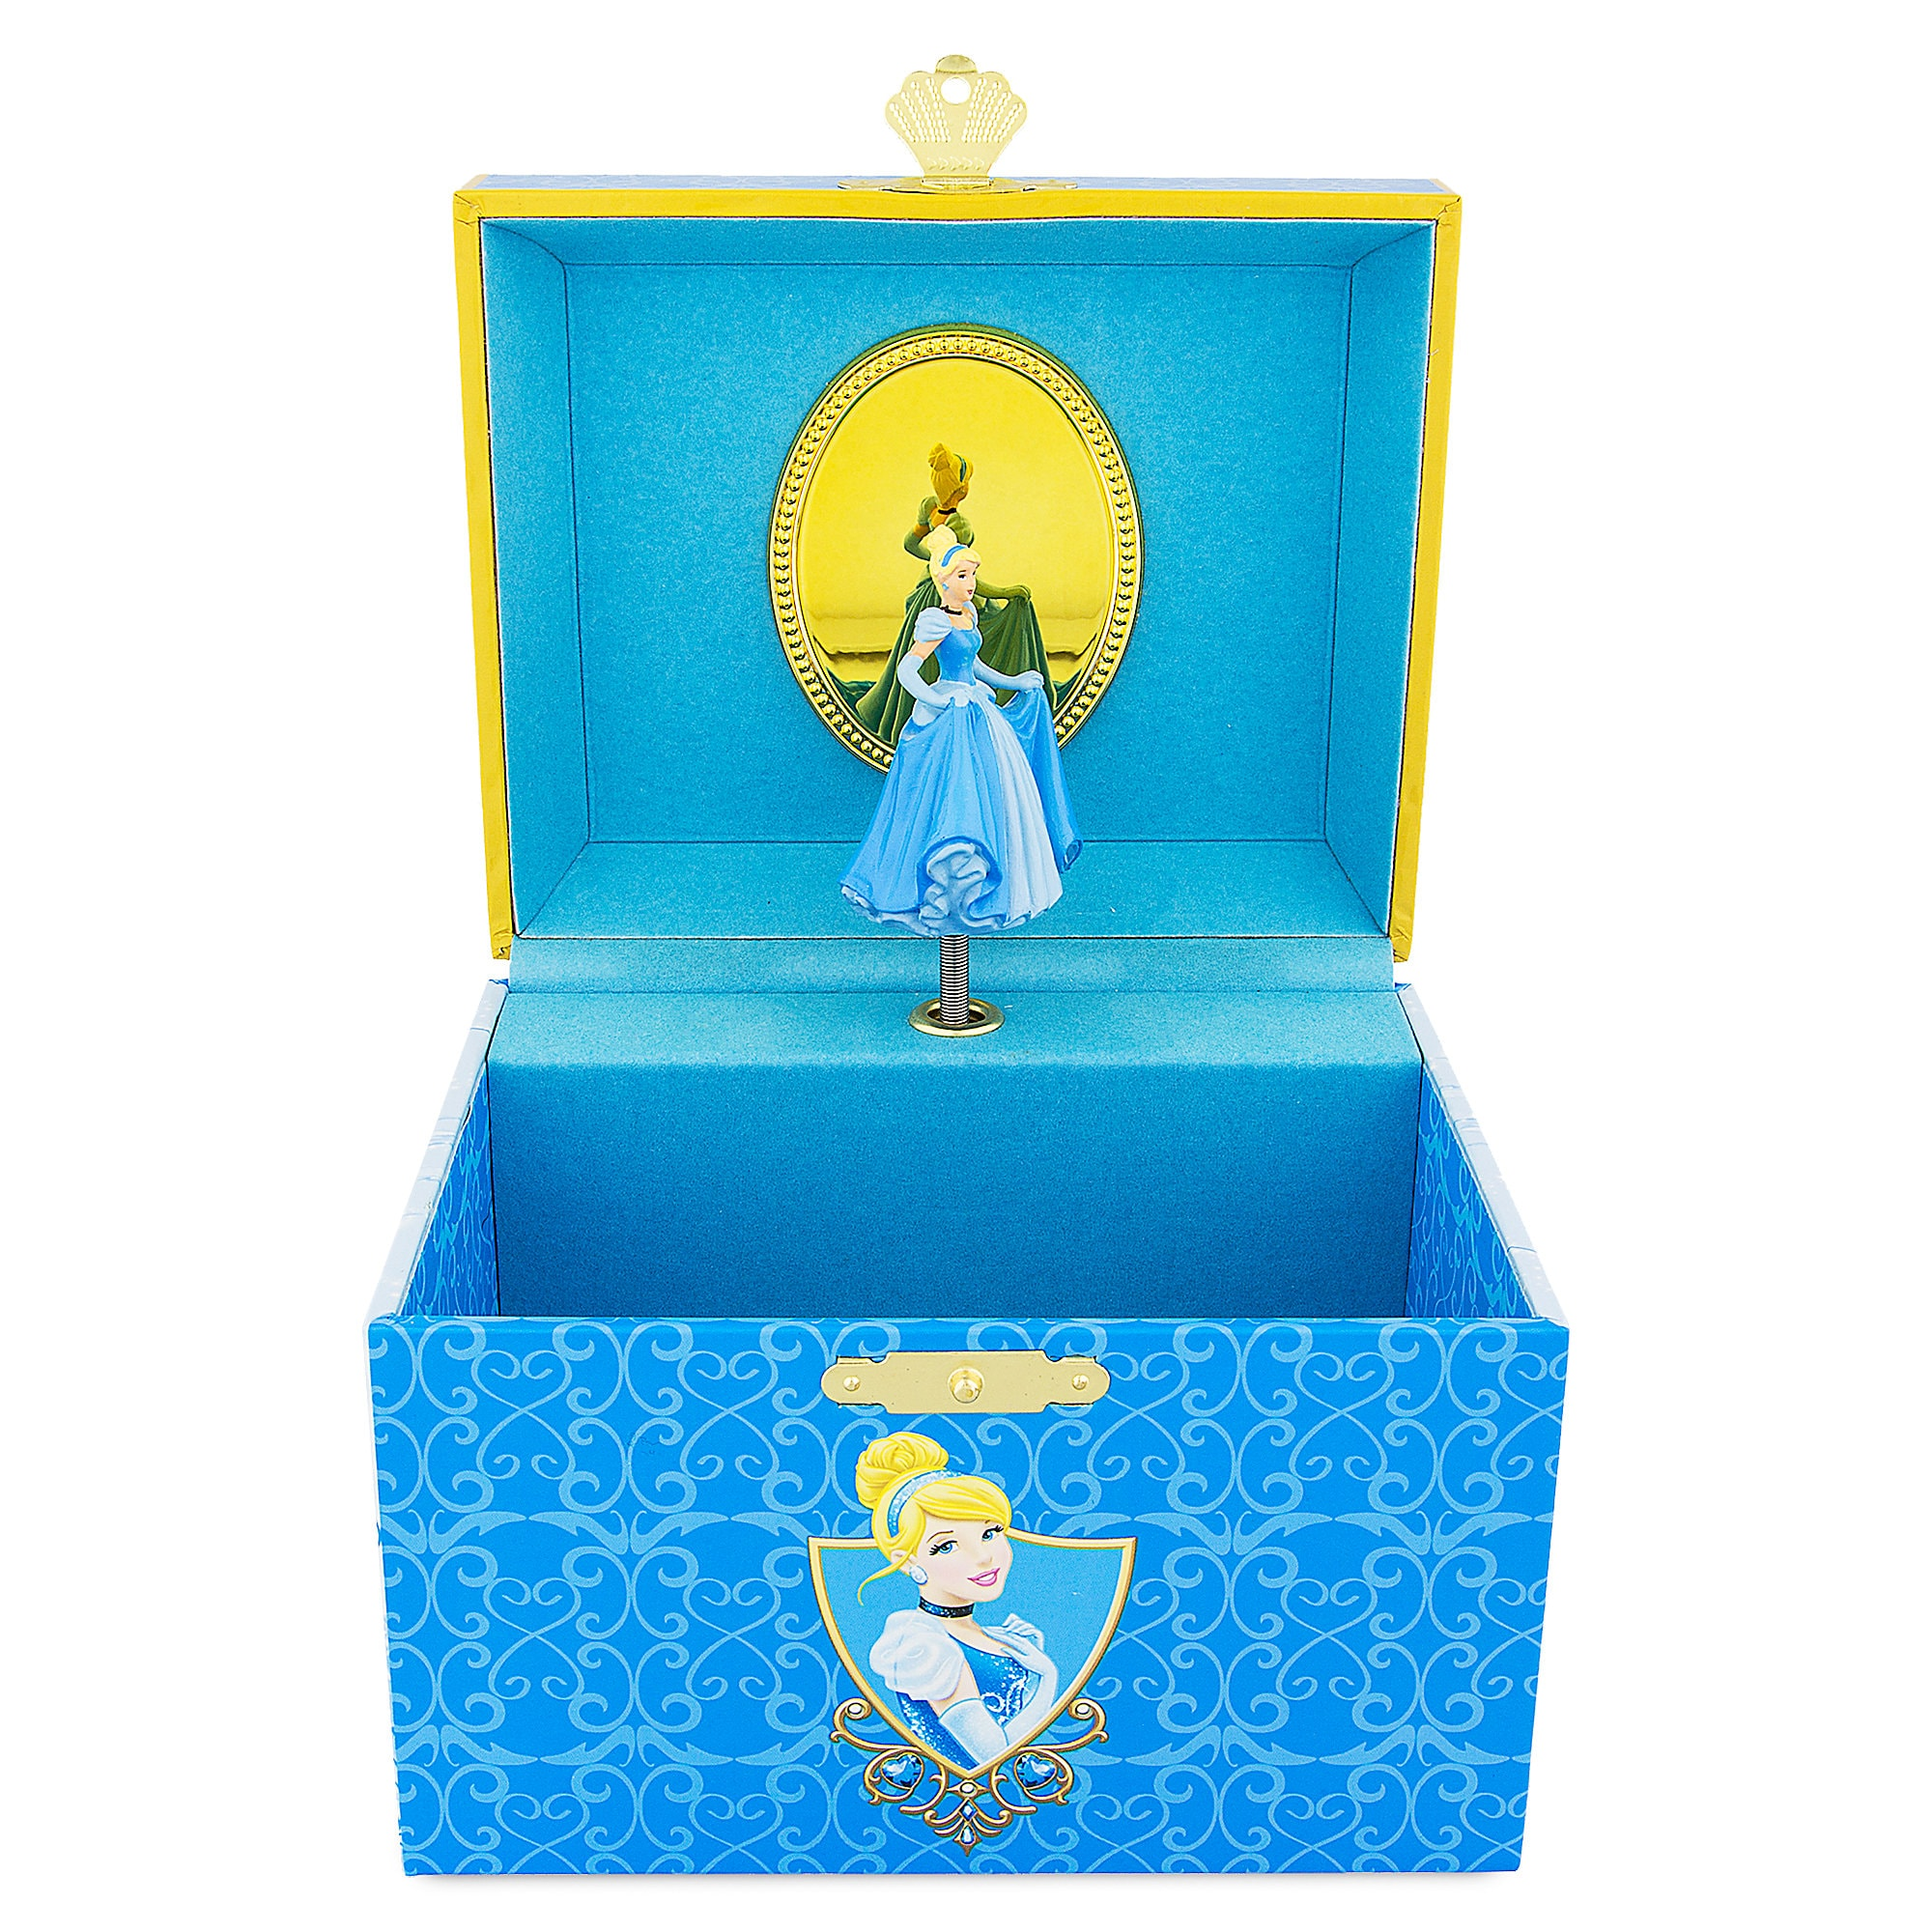 Cinderella Musical Jewelry Box shopDisney